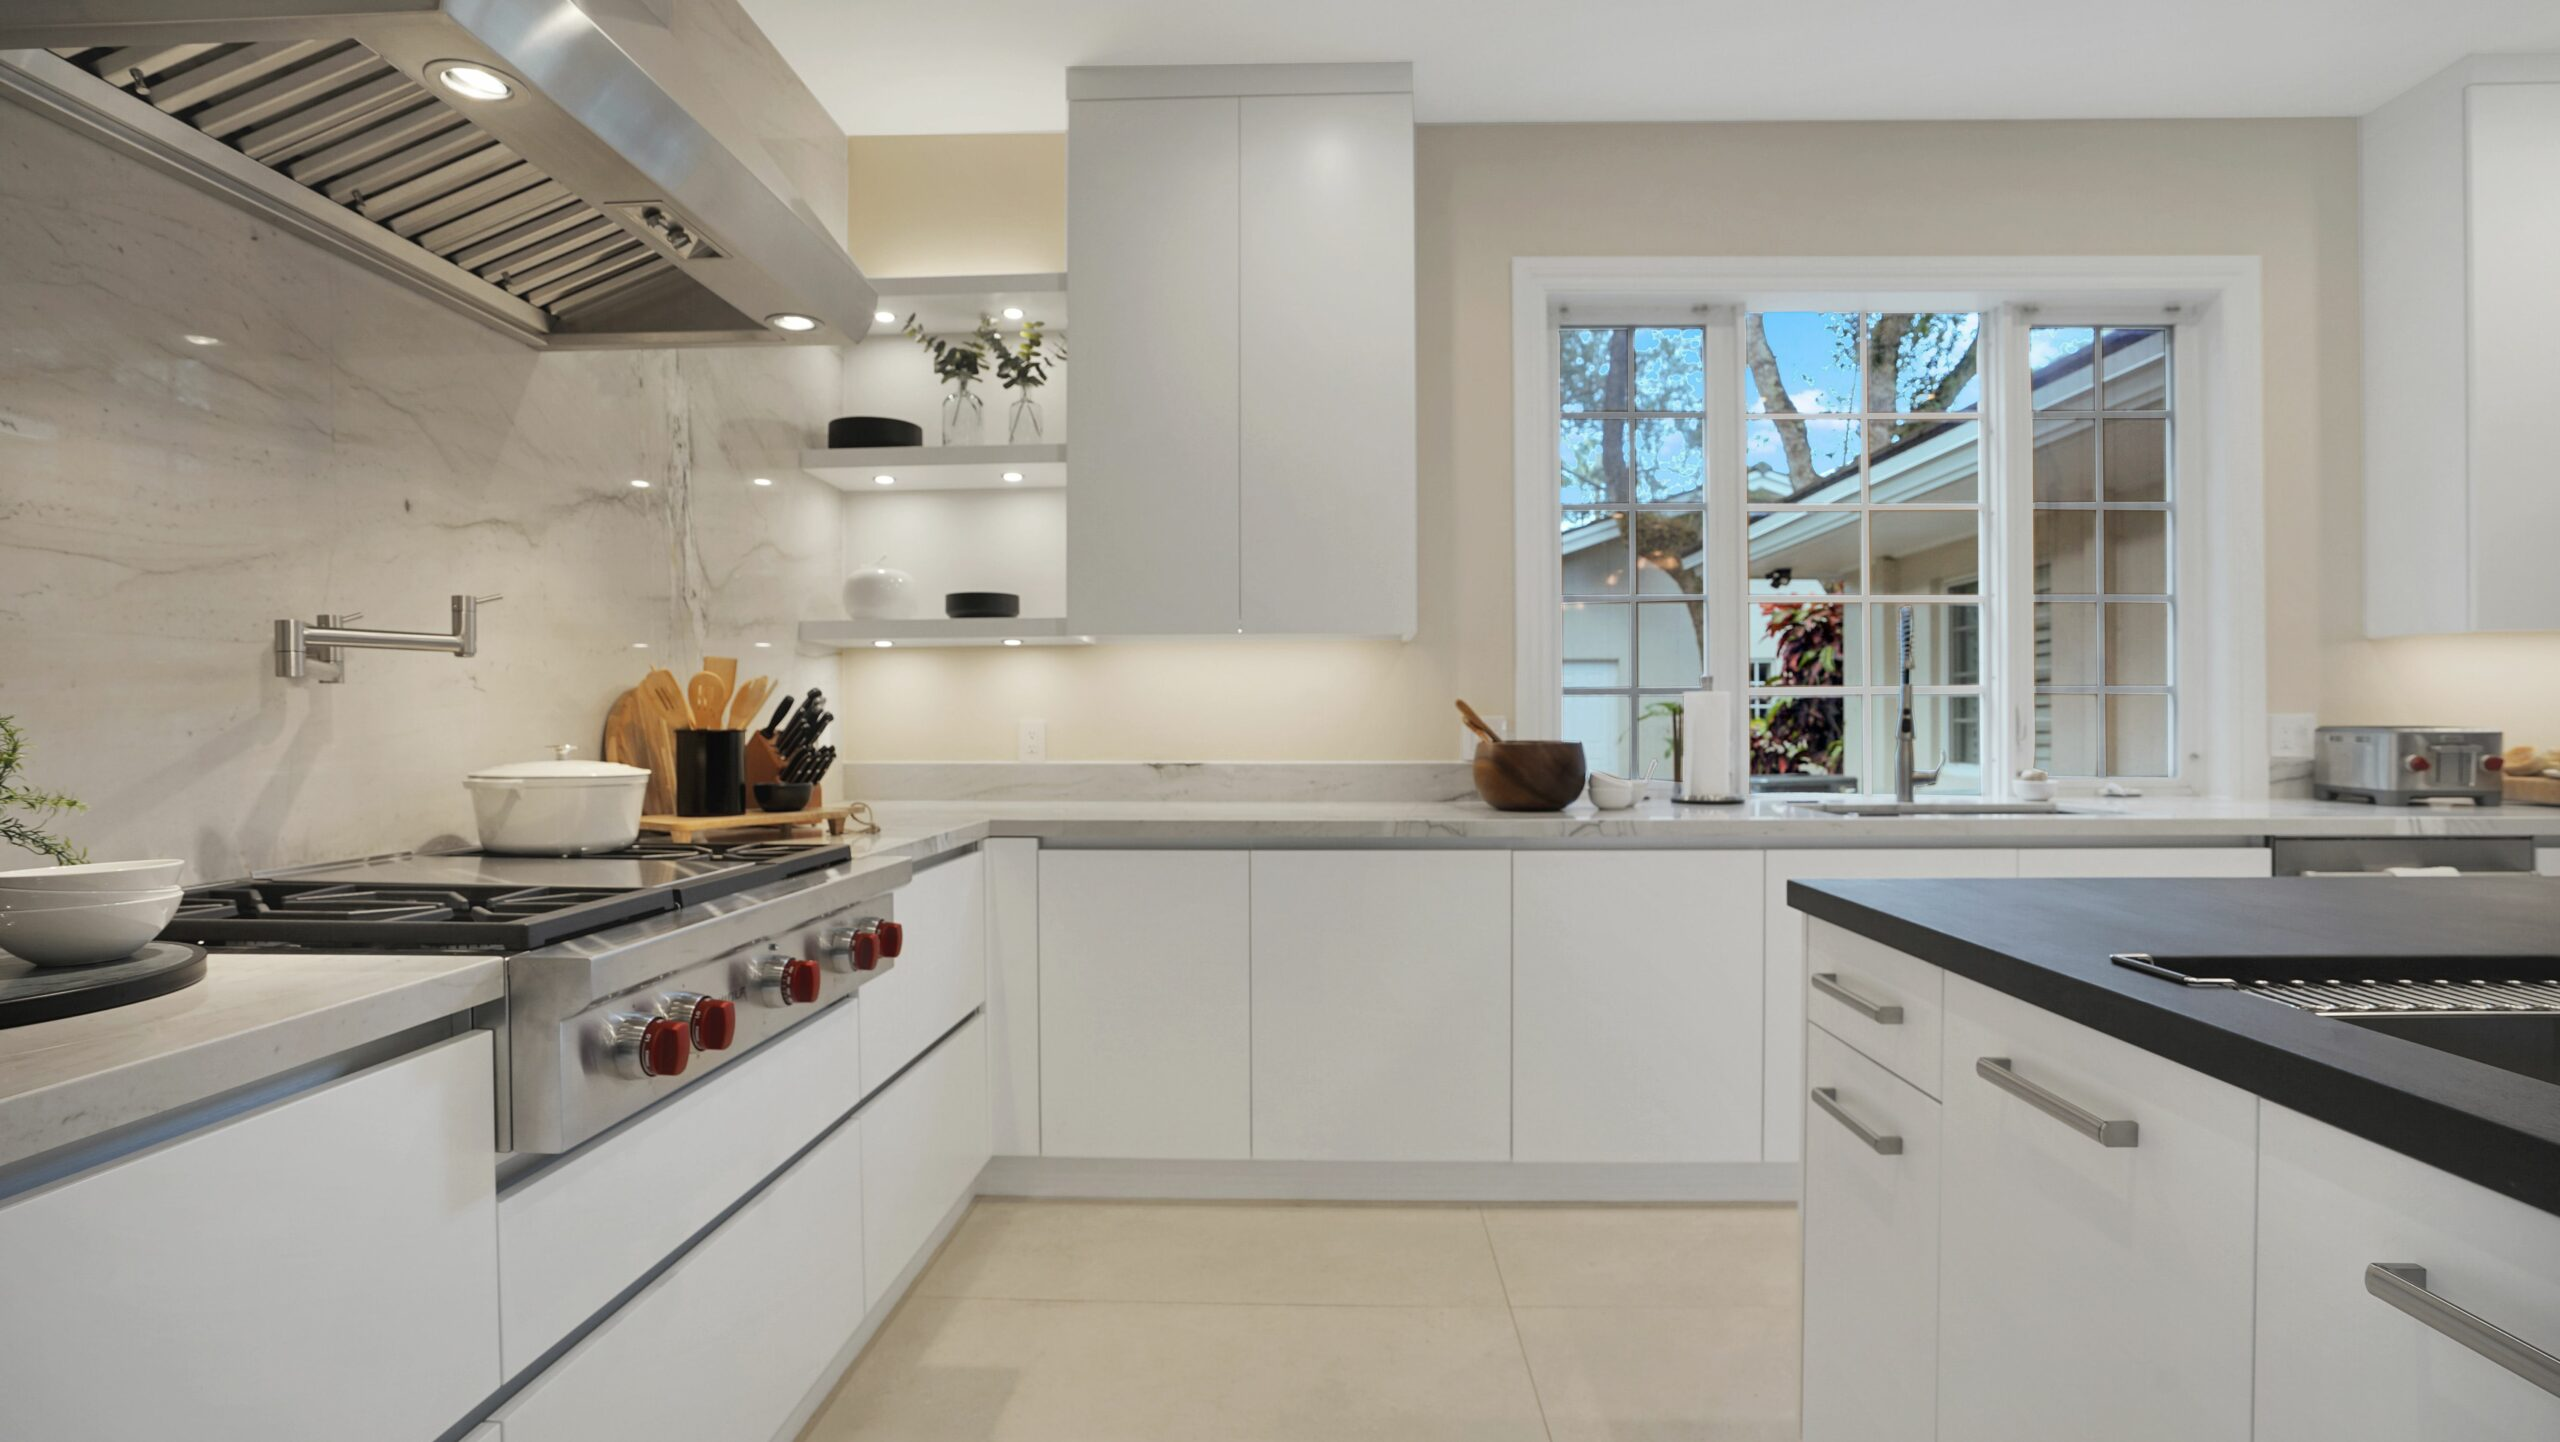 Custom Kitchen Cabinets in Key Largo, Miami Lakes, Miami, Miami Beach, Kendall, and Coral Gables